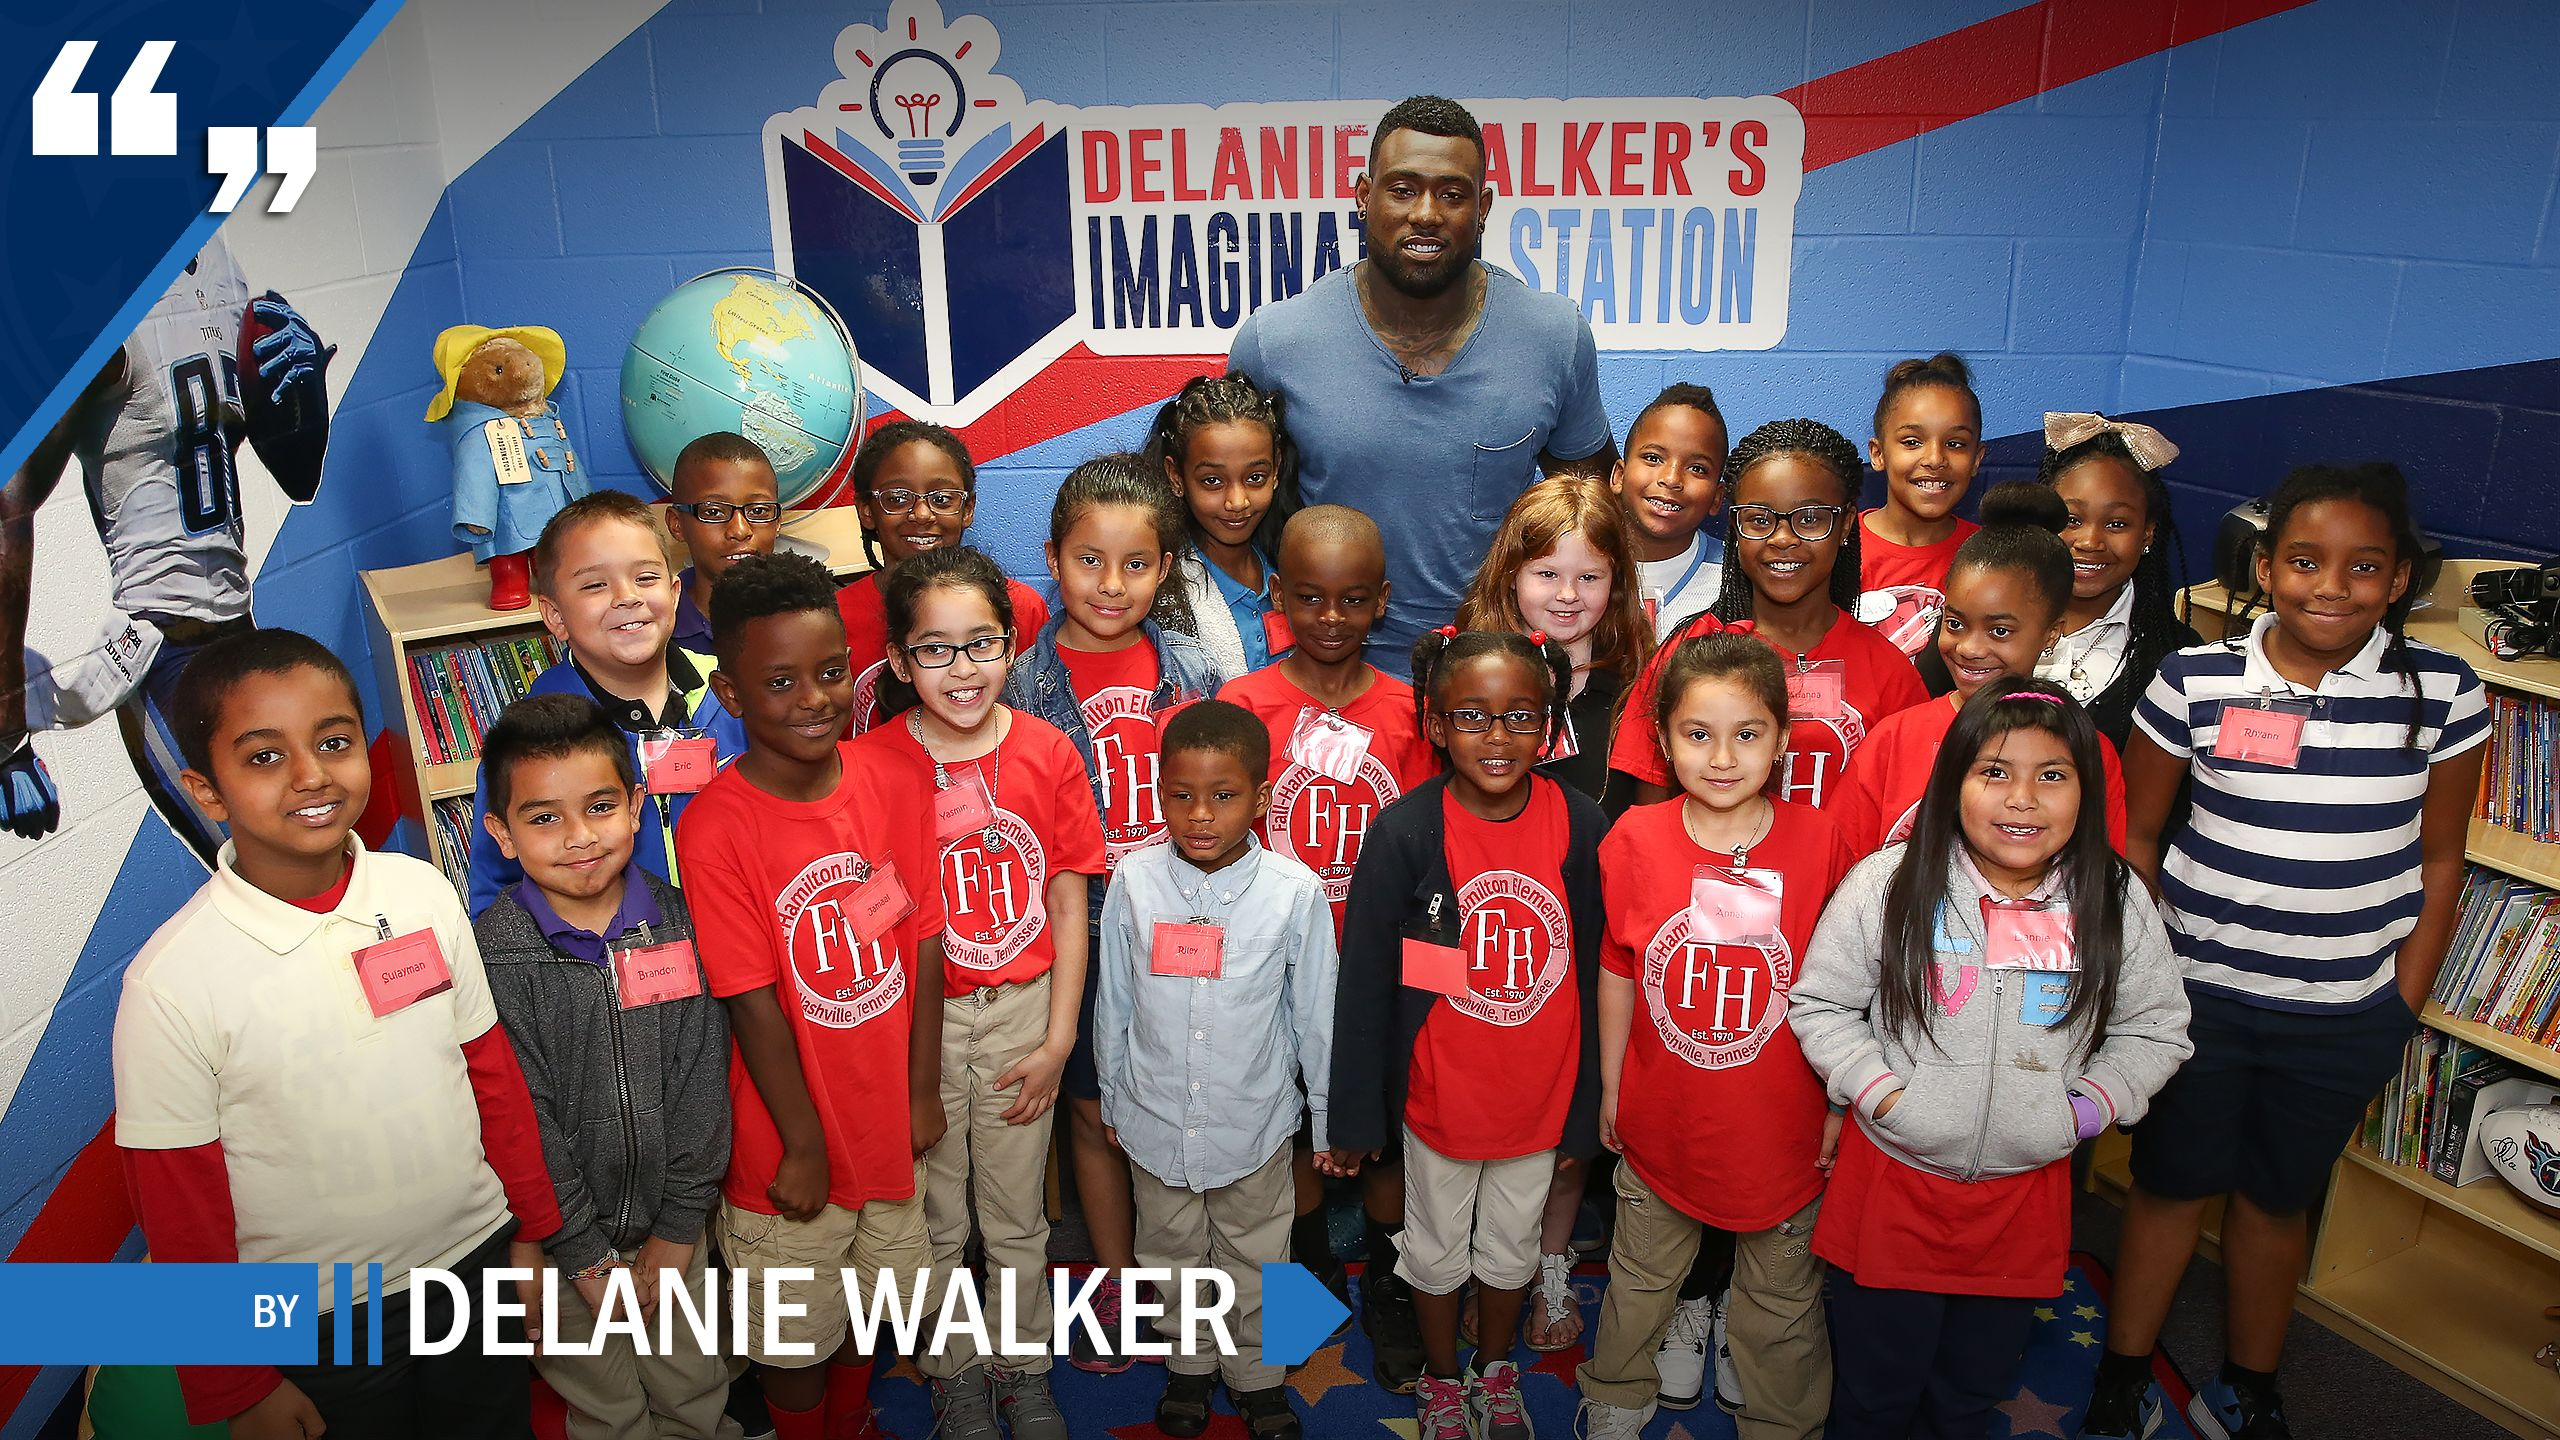 THIS IS MY STORY  //  by Delanie Walker